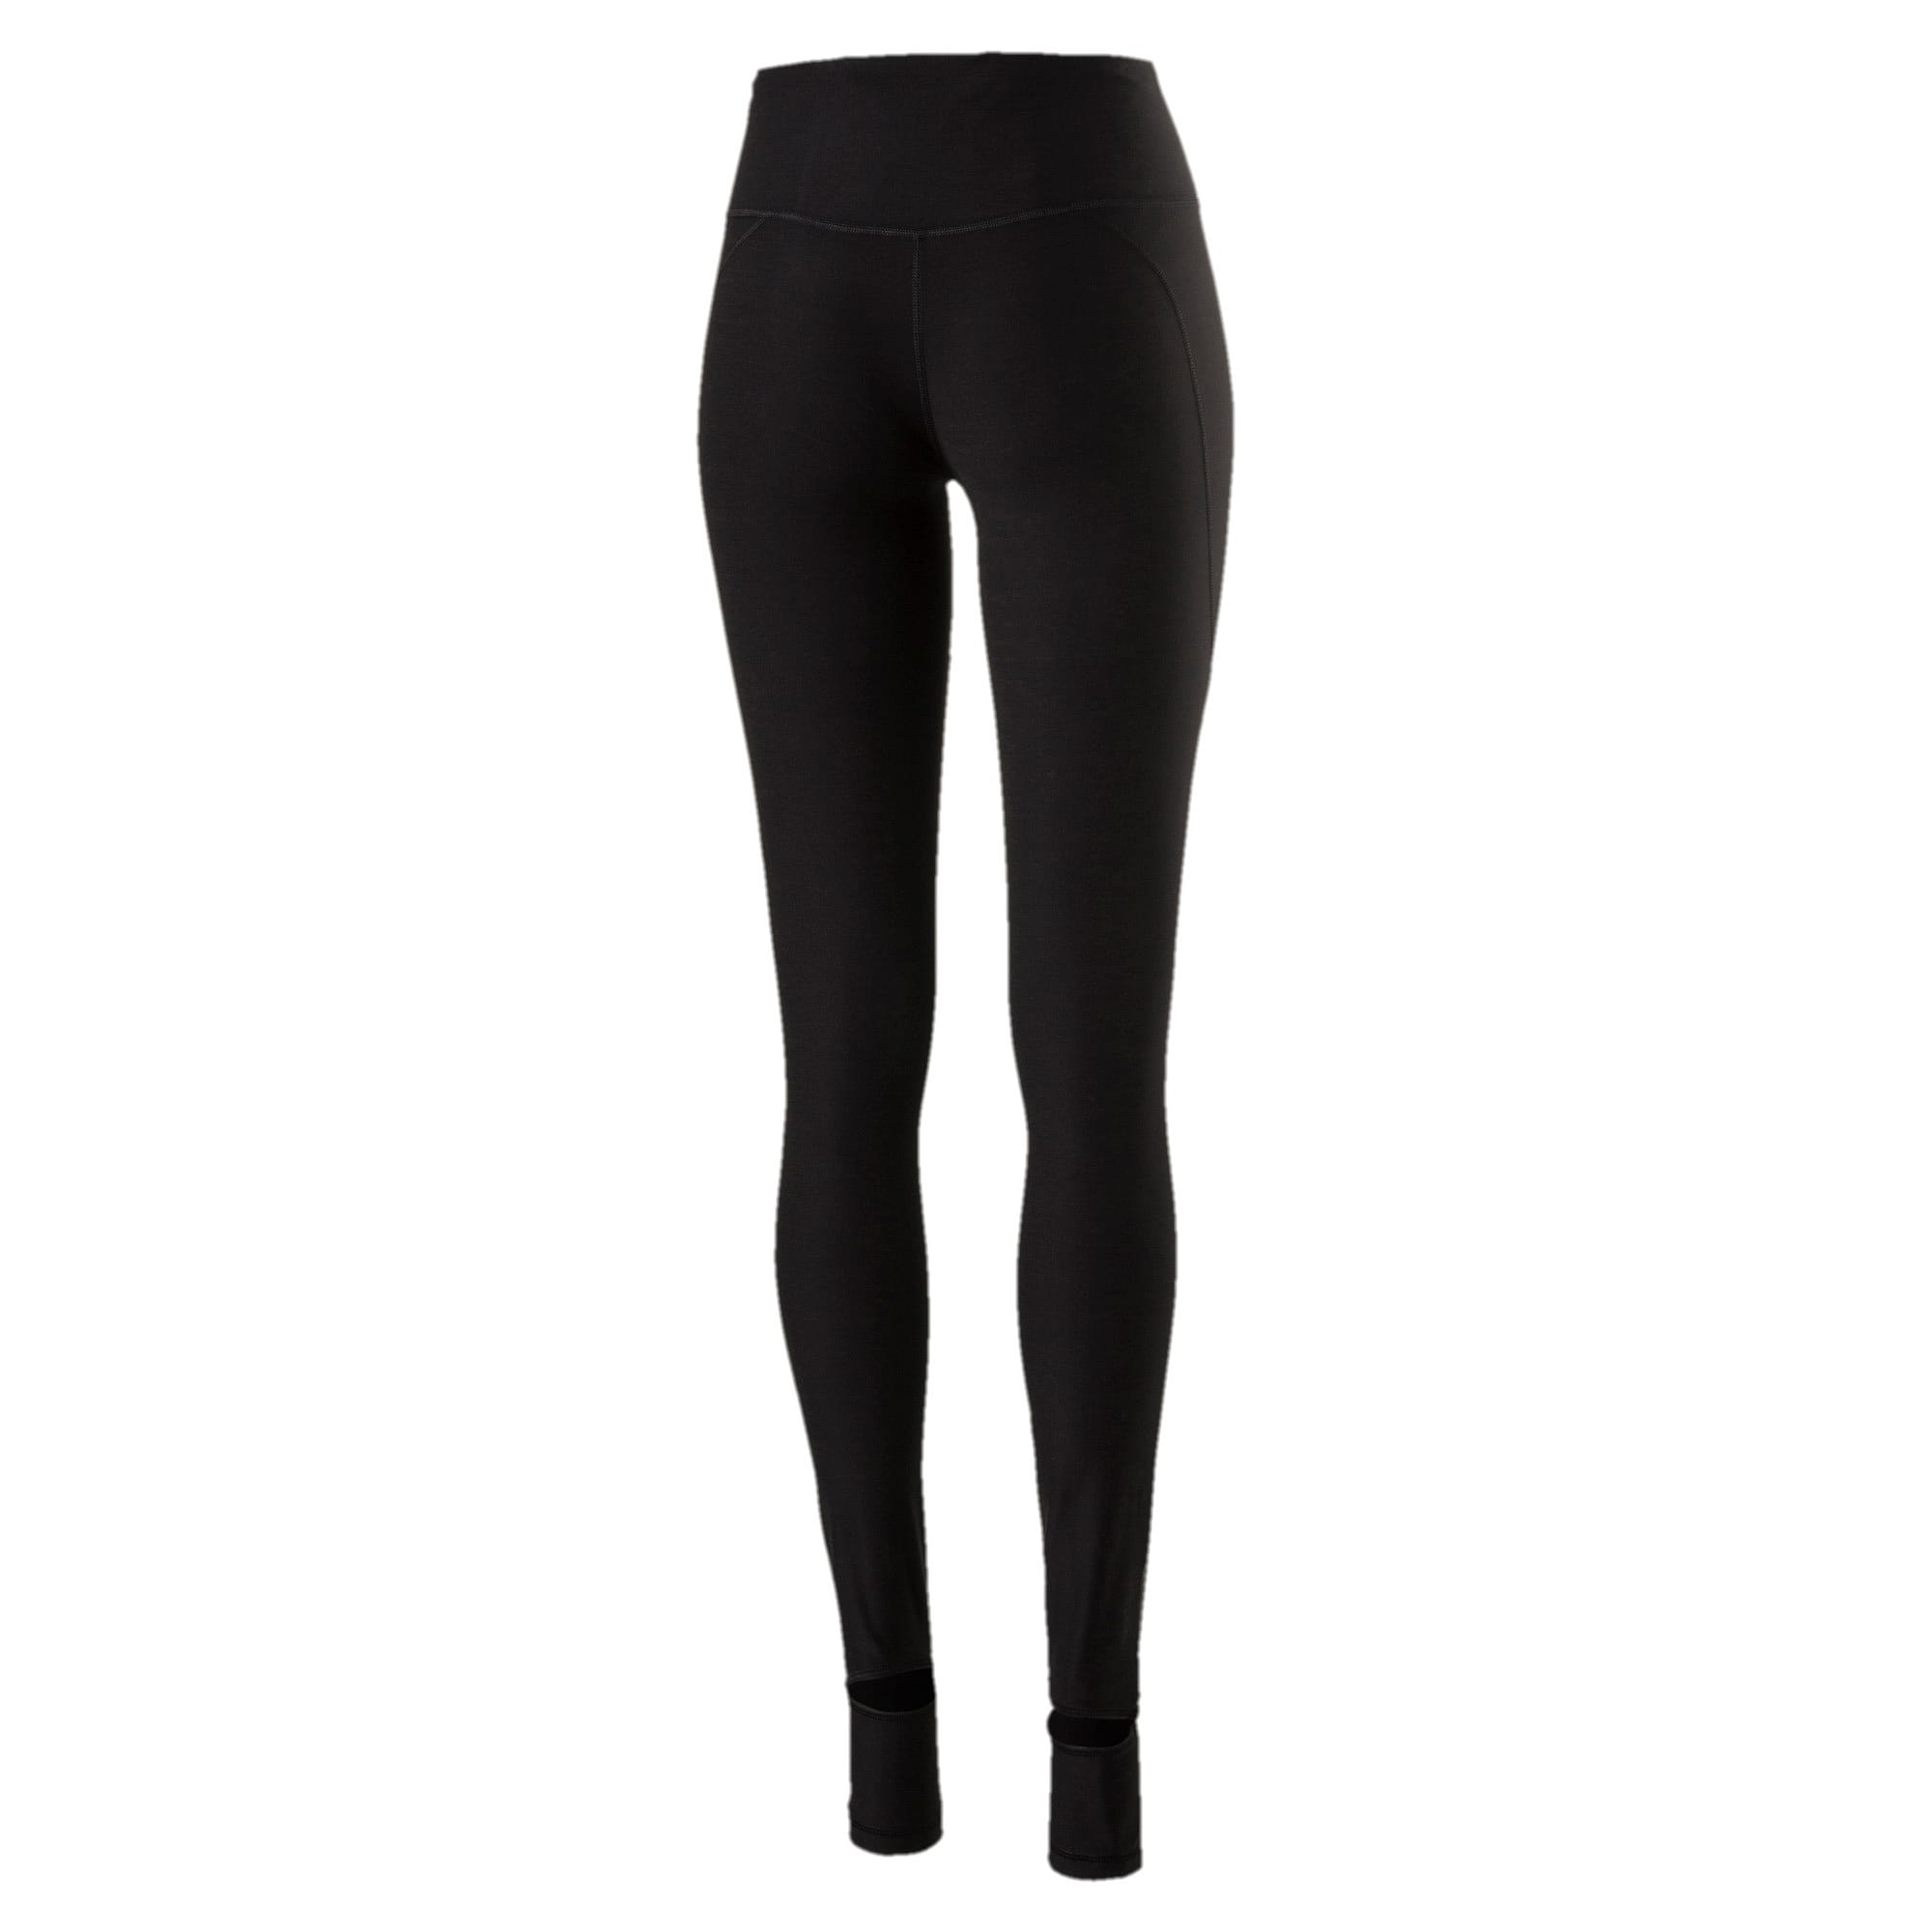 Active Training Women's Yogini Lux Tights, Puma Black, large-IND